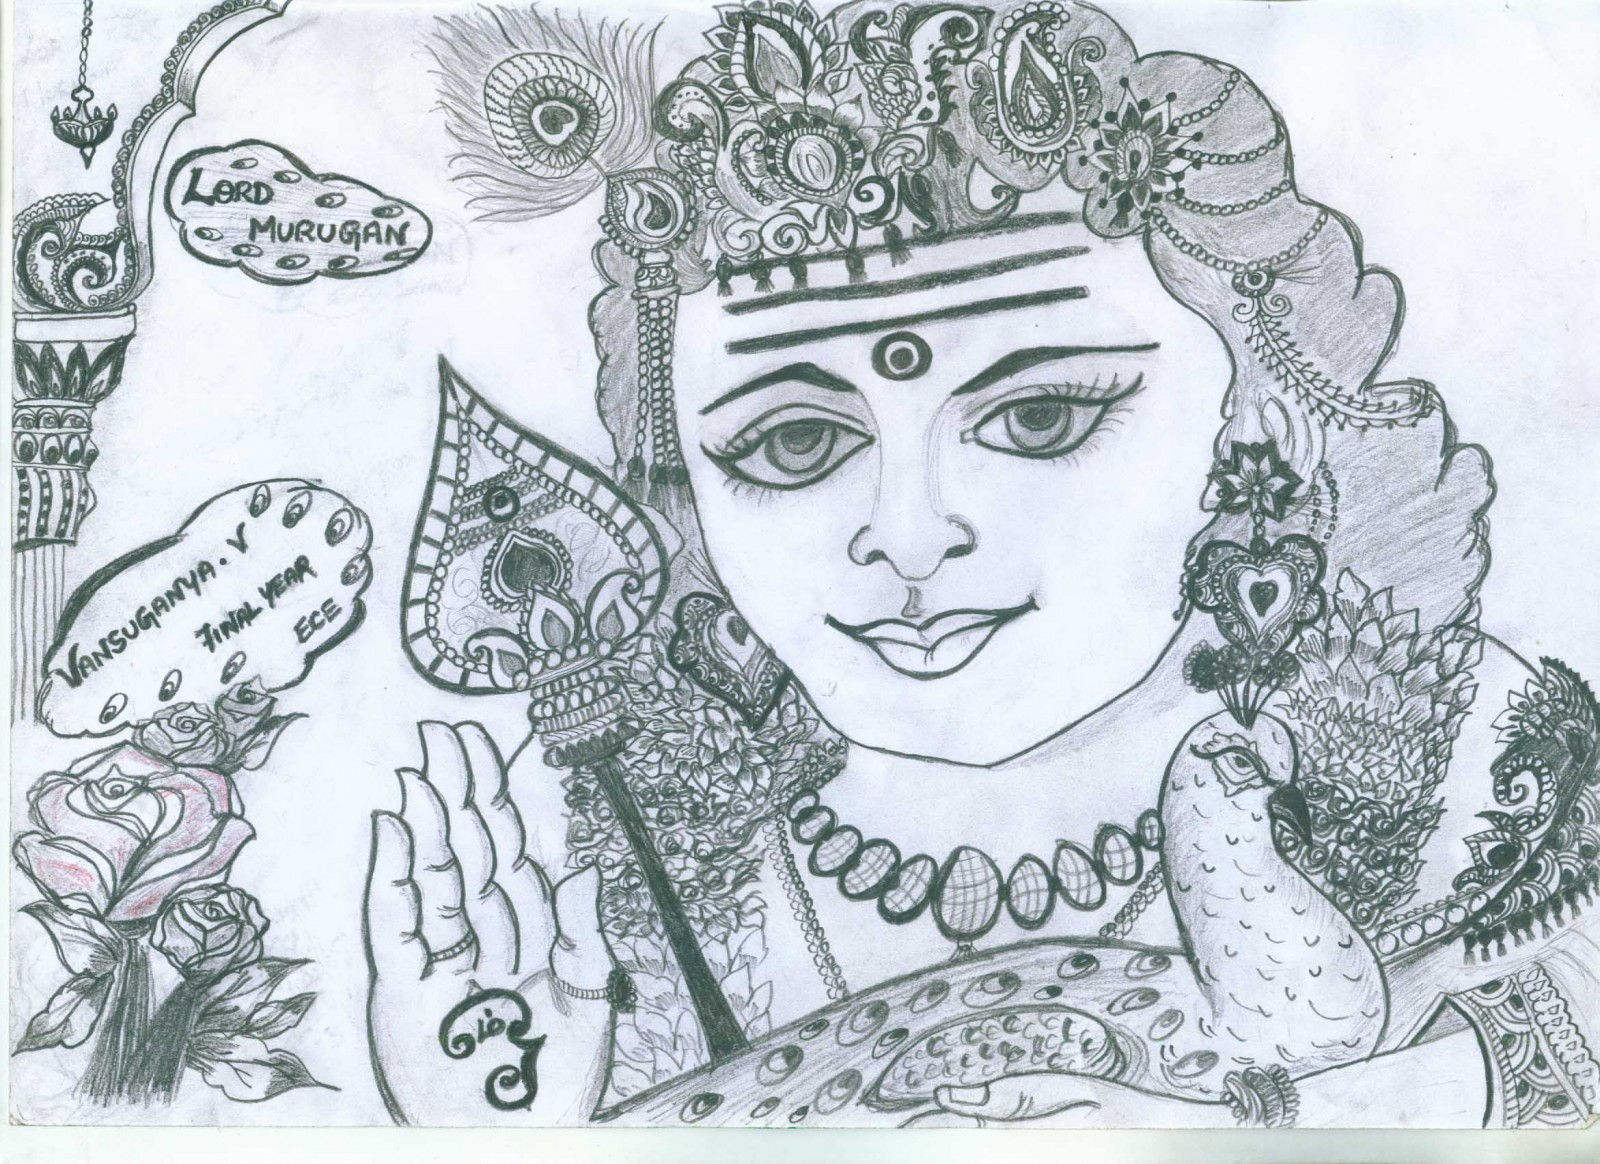 Gods own web lord muruga pencil sketch lord muruga alias lord